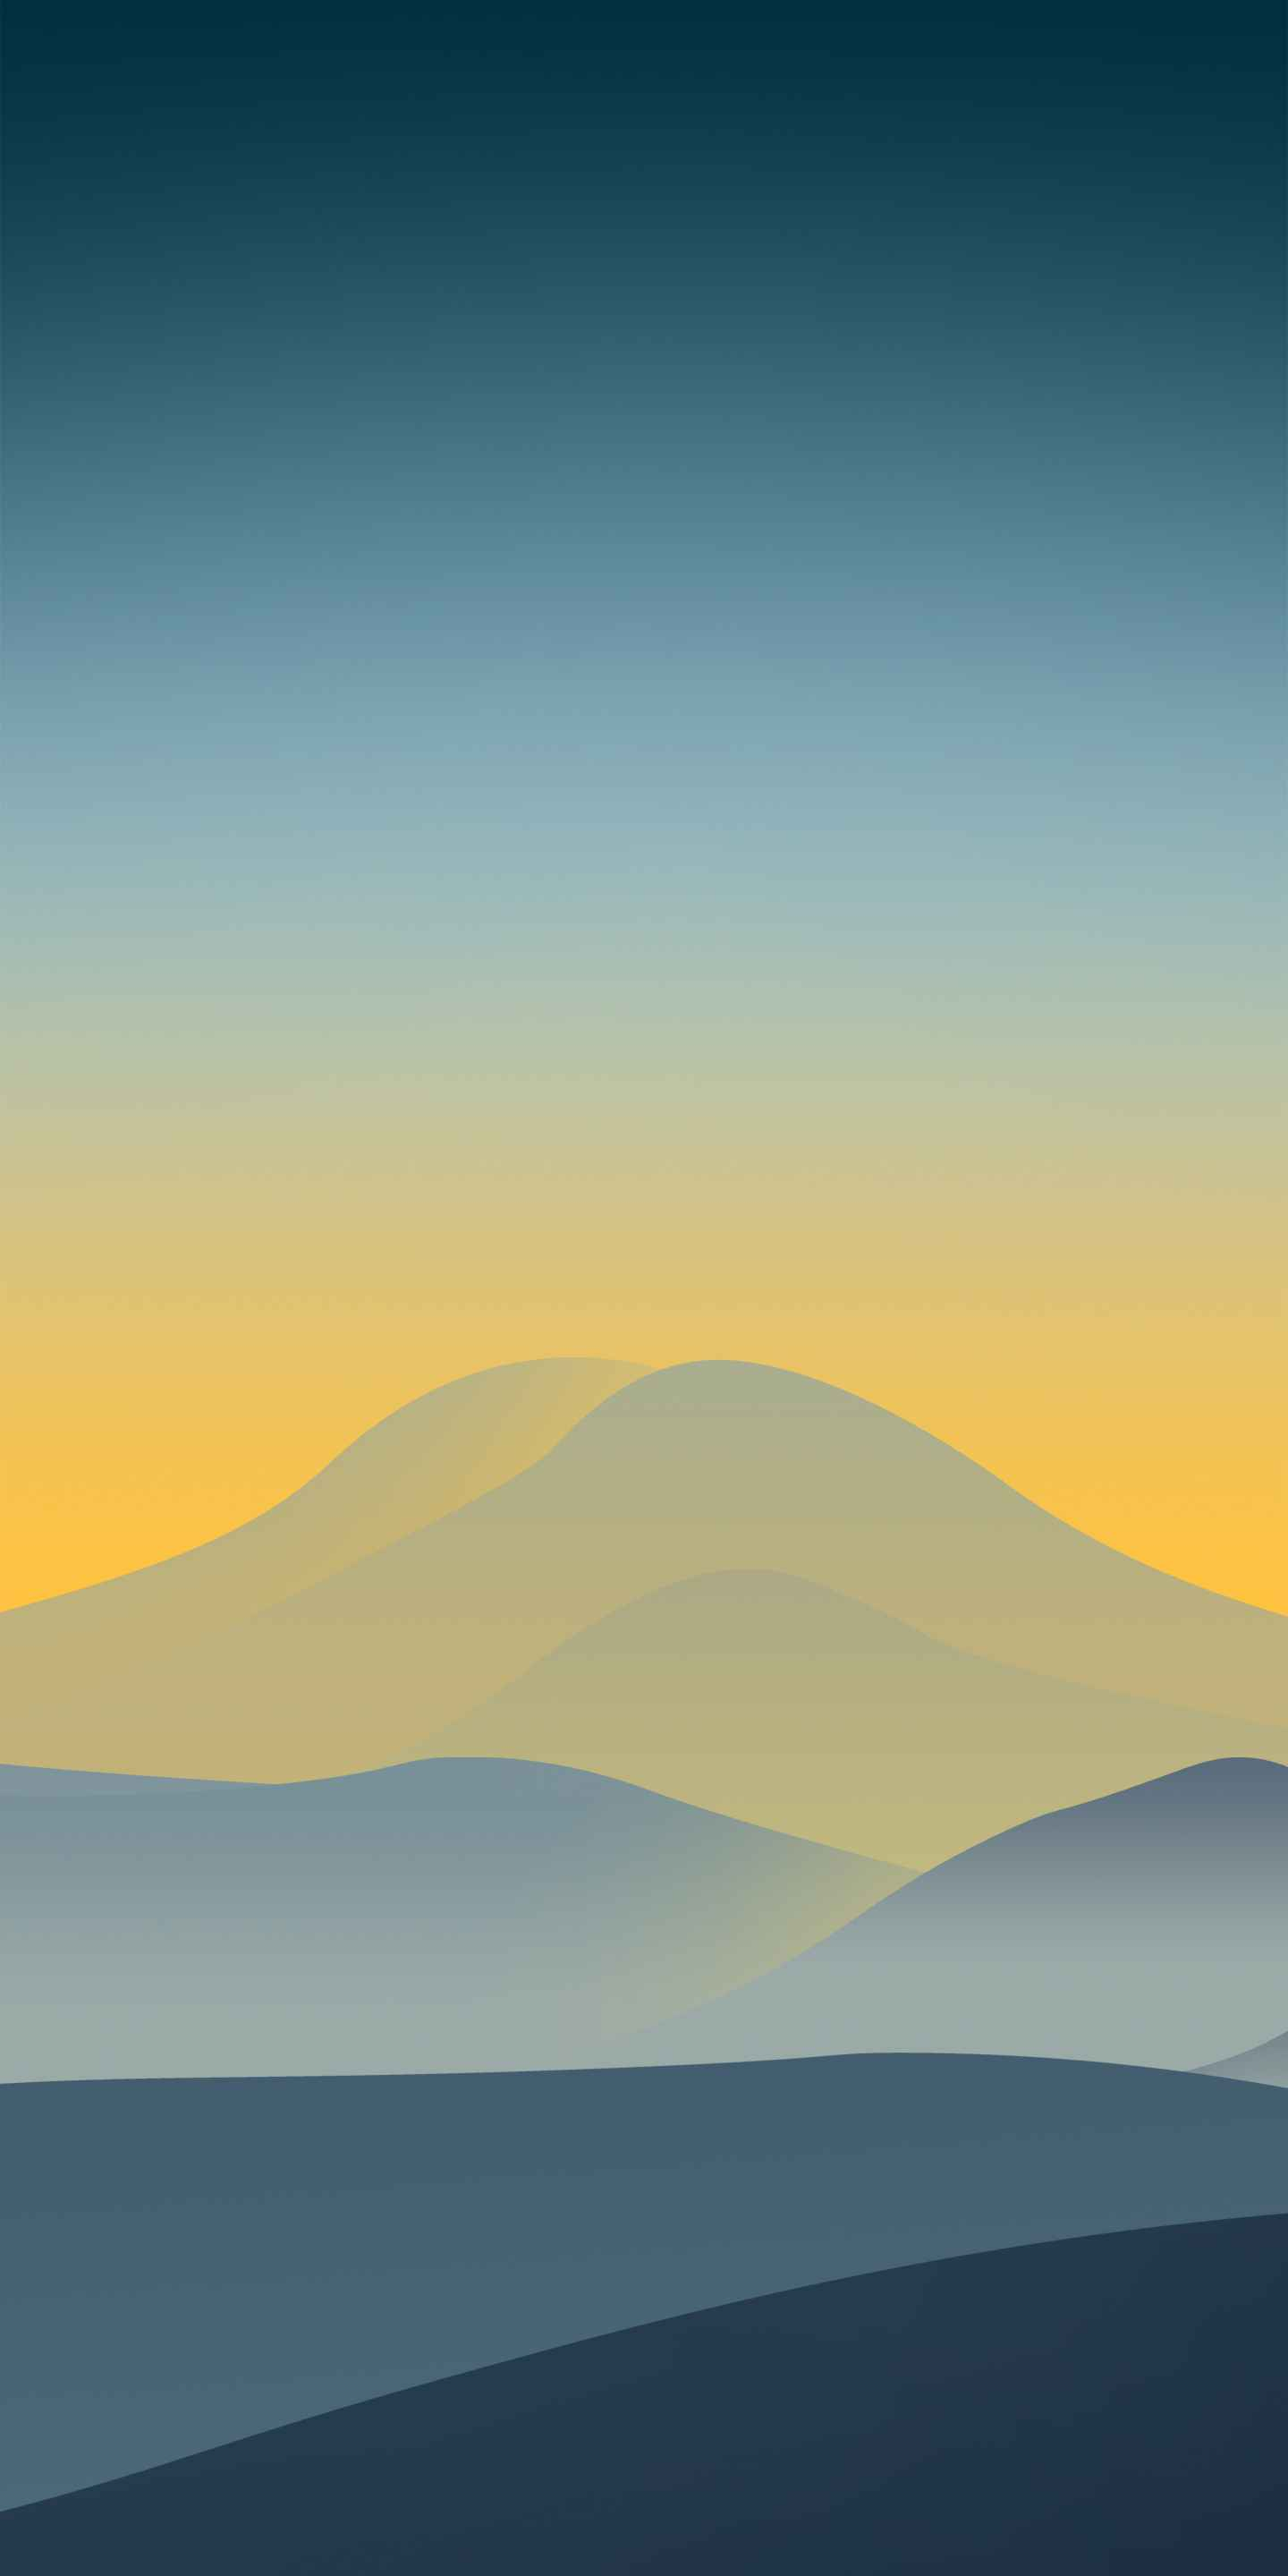 May Girls Wallpaper Desert Mountain Minimal Iphone Wallpaper Iphone Wallpapers